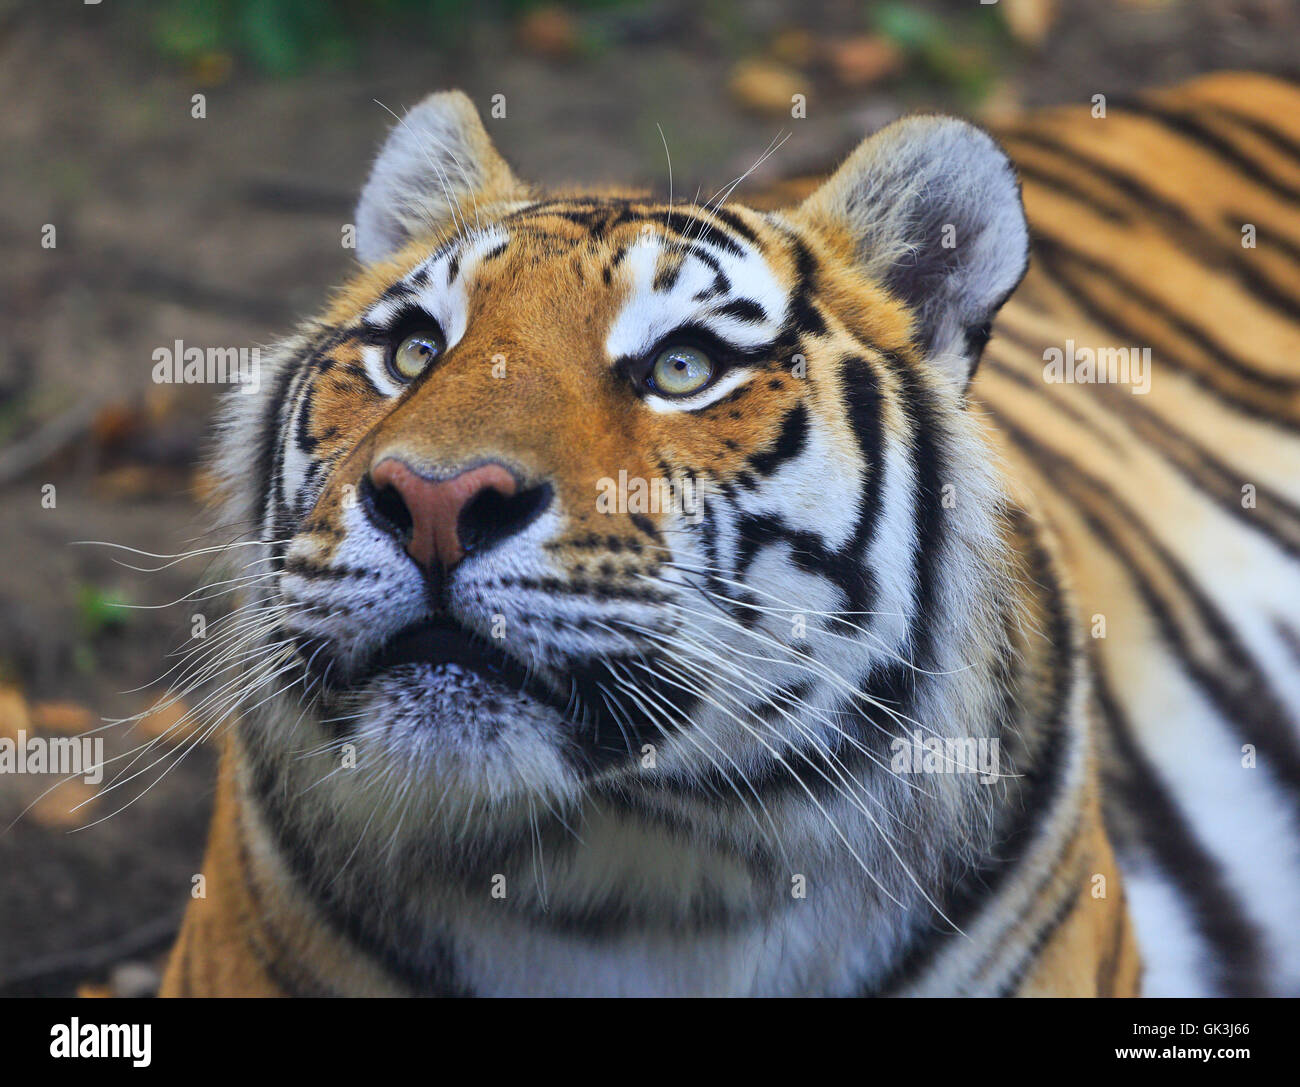 Bengal tiger portrait - Stock Image